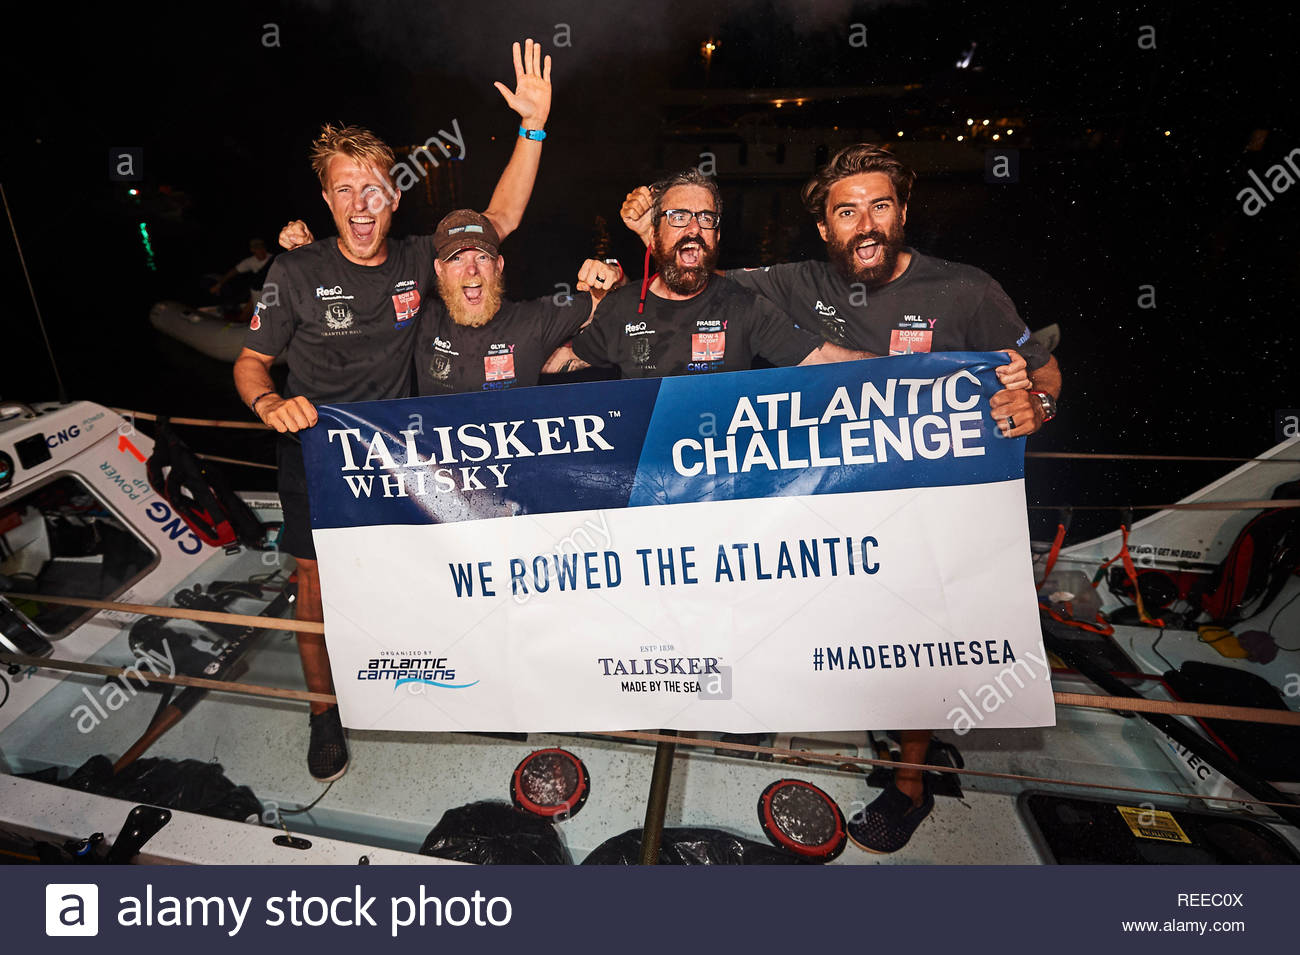 Undated handout photo issued by Talisker Whisky Challenge of Row4Victory (left to right) Duncan Roy, Glyn Sadler, Fraser Mowlem and Will Quarmby, who have survived injuries, attacks by flying fish and a near-miss with a tanker to take fifth place in a 3,000-mile trans-Atlantic rowing race. - Stock Image